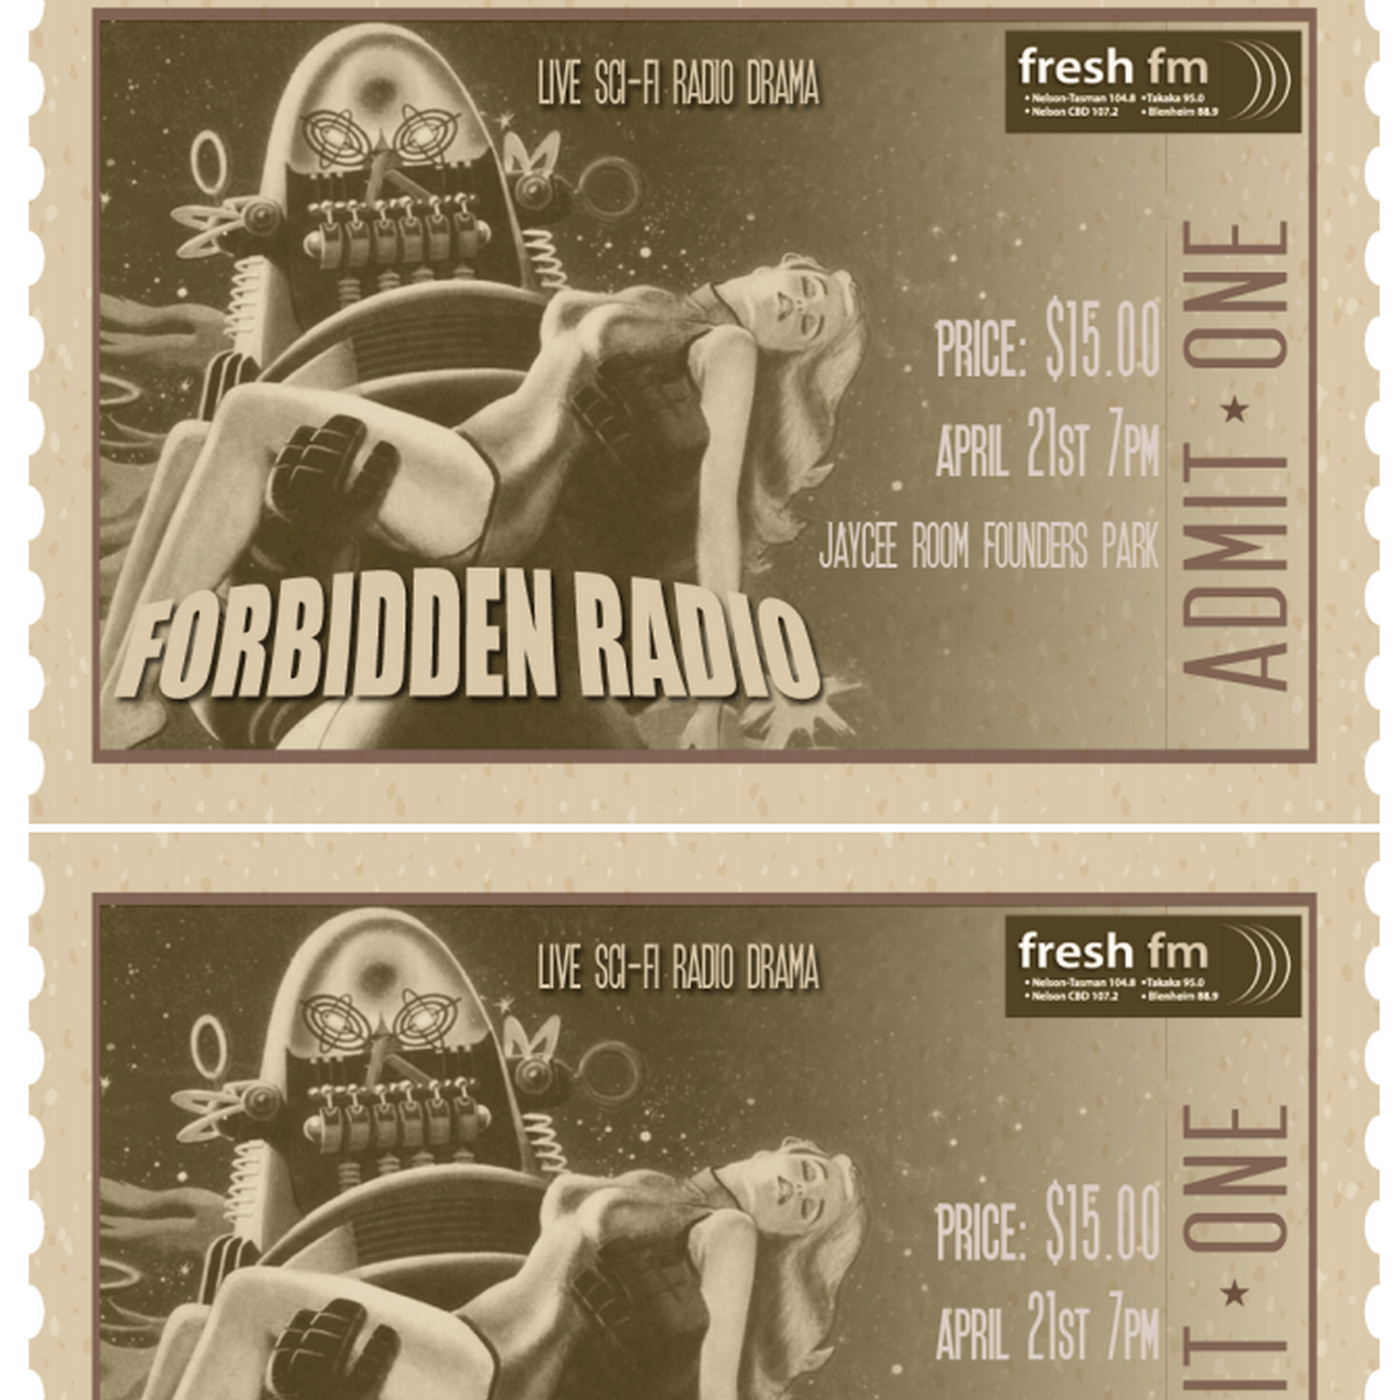 Forbidden Radio